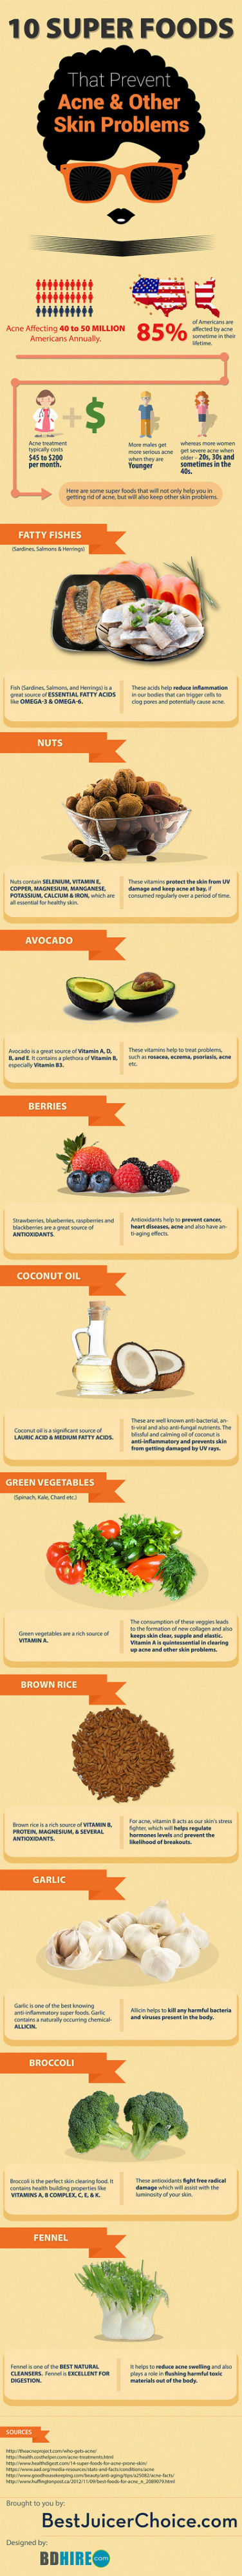 10 Super Foods That Prevent Acne & Other Skin Problems [Infographic]